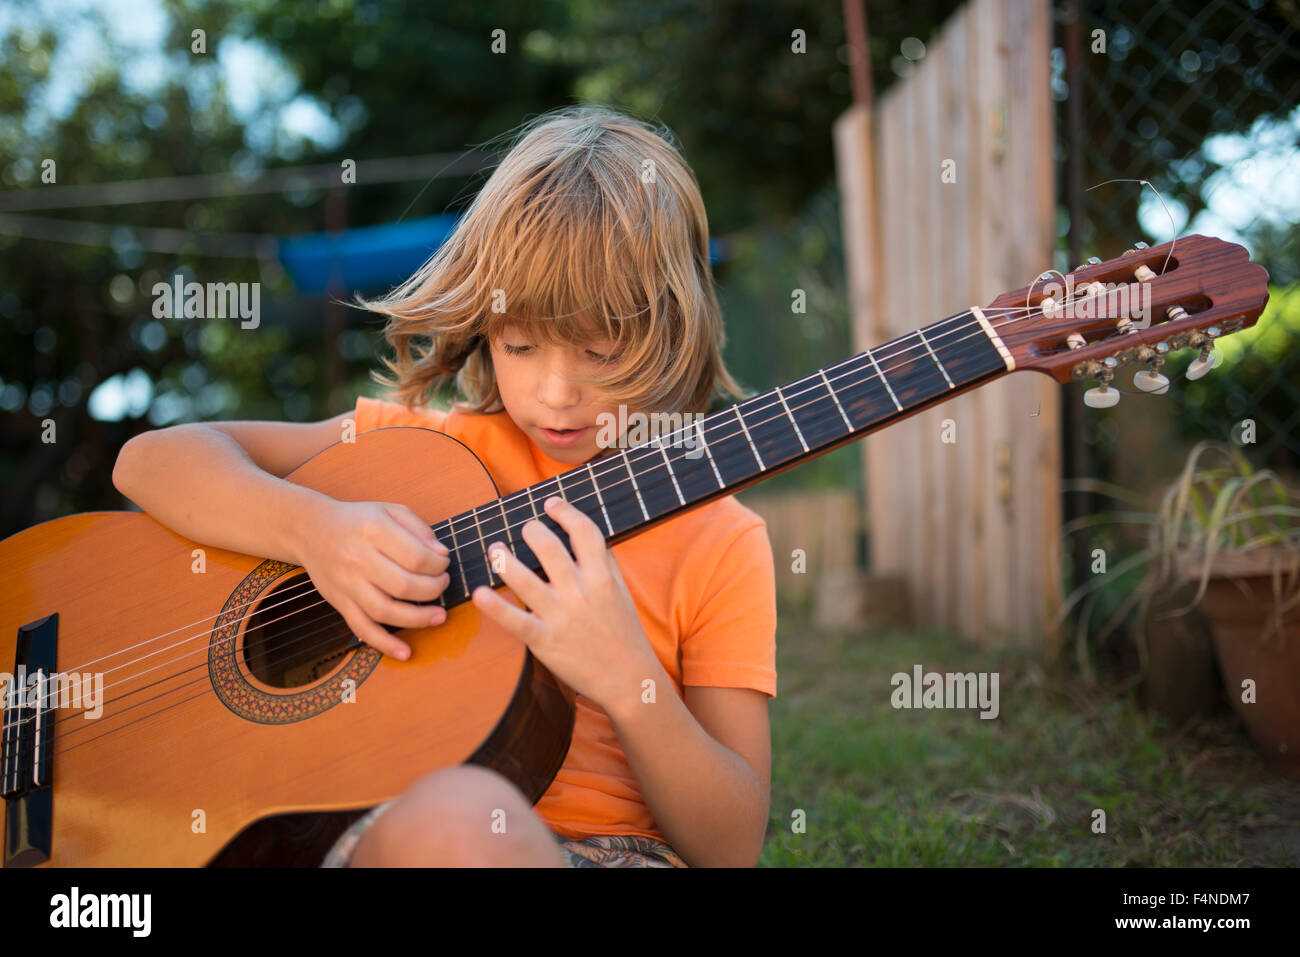 Spain, Long-haired blond boy playing spanish guitar outdoors - Stock Image